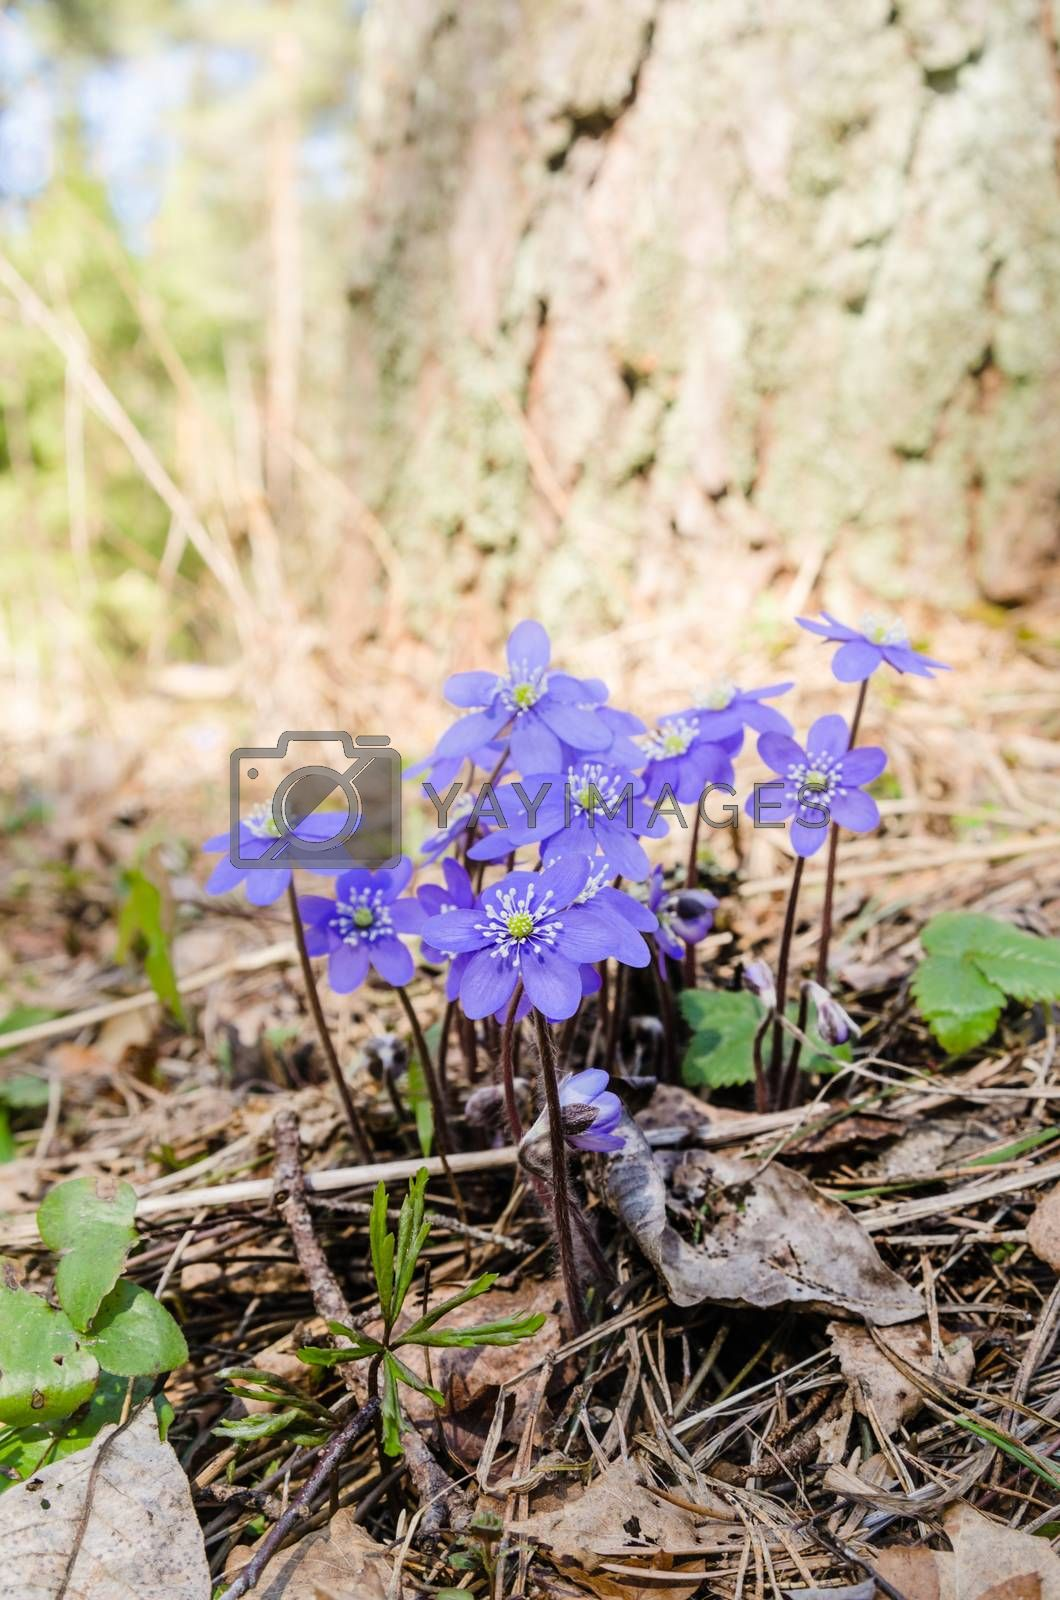 The first spring flowers in a wood, a close up